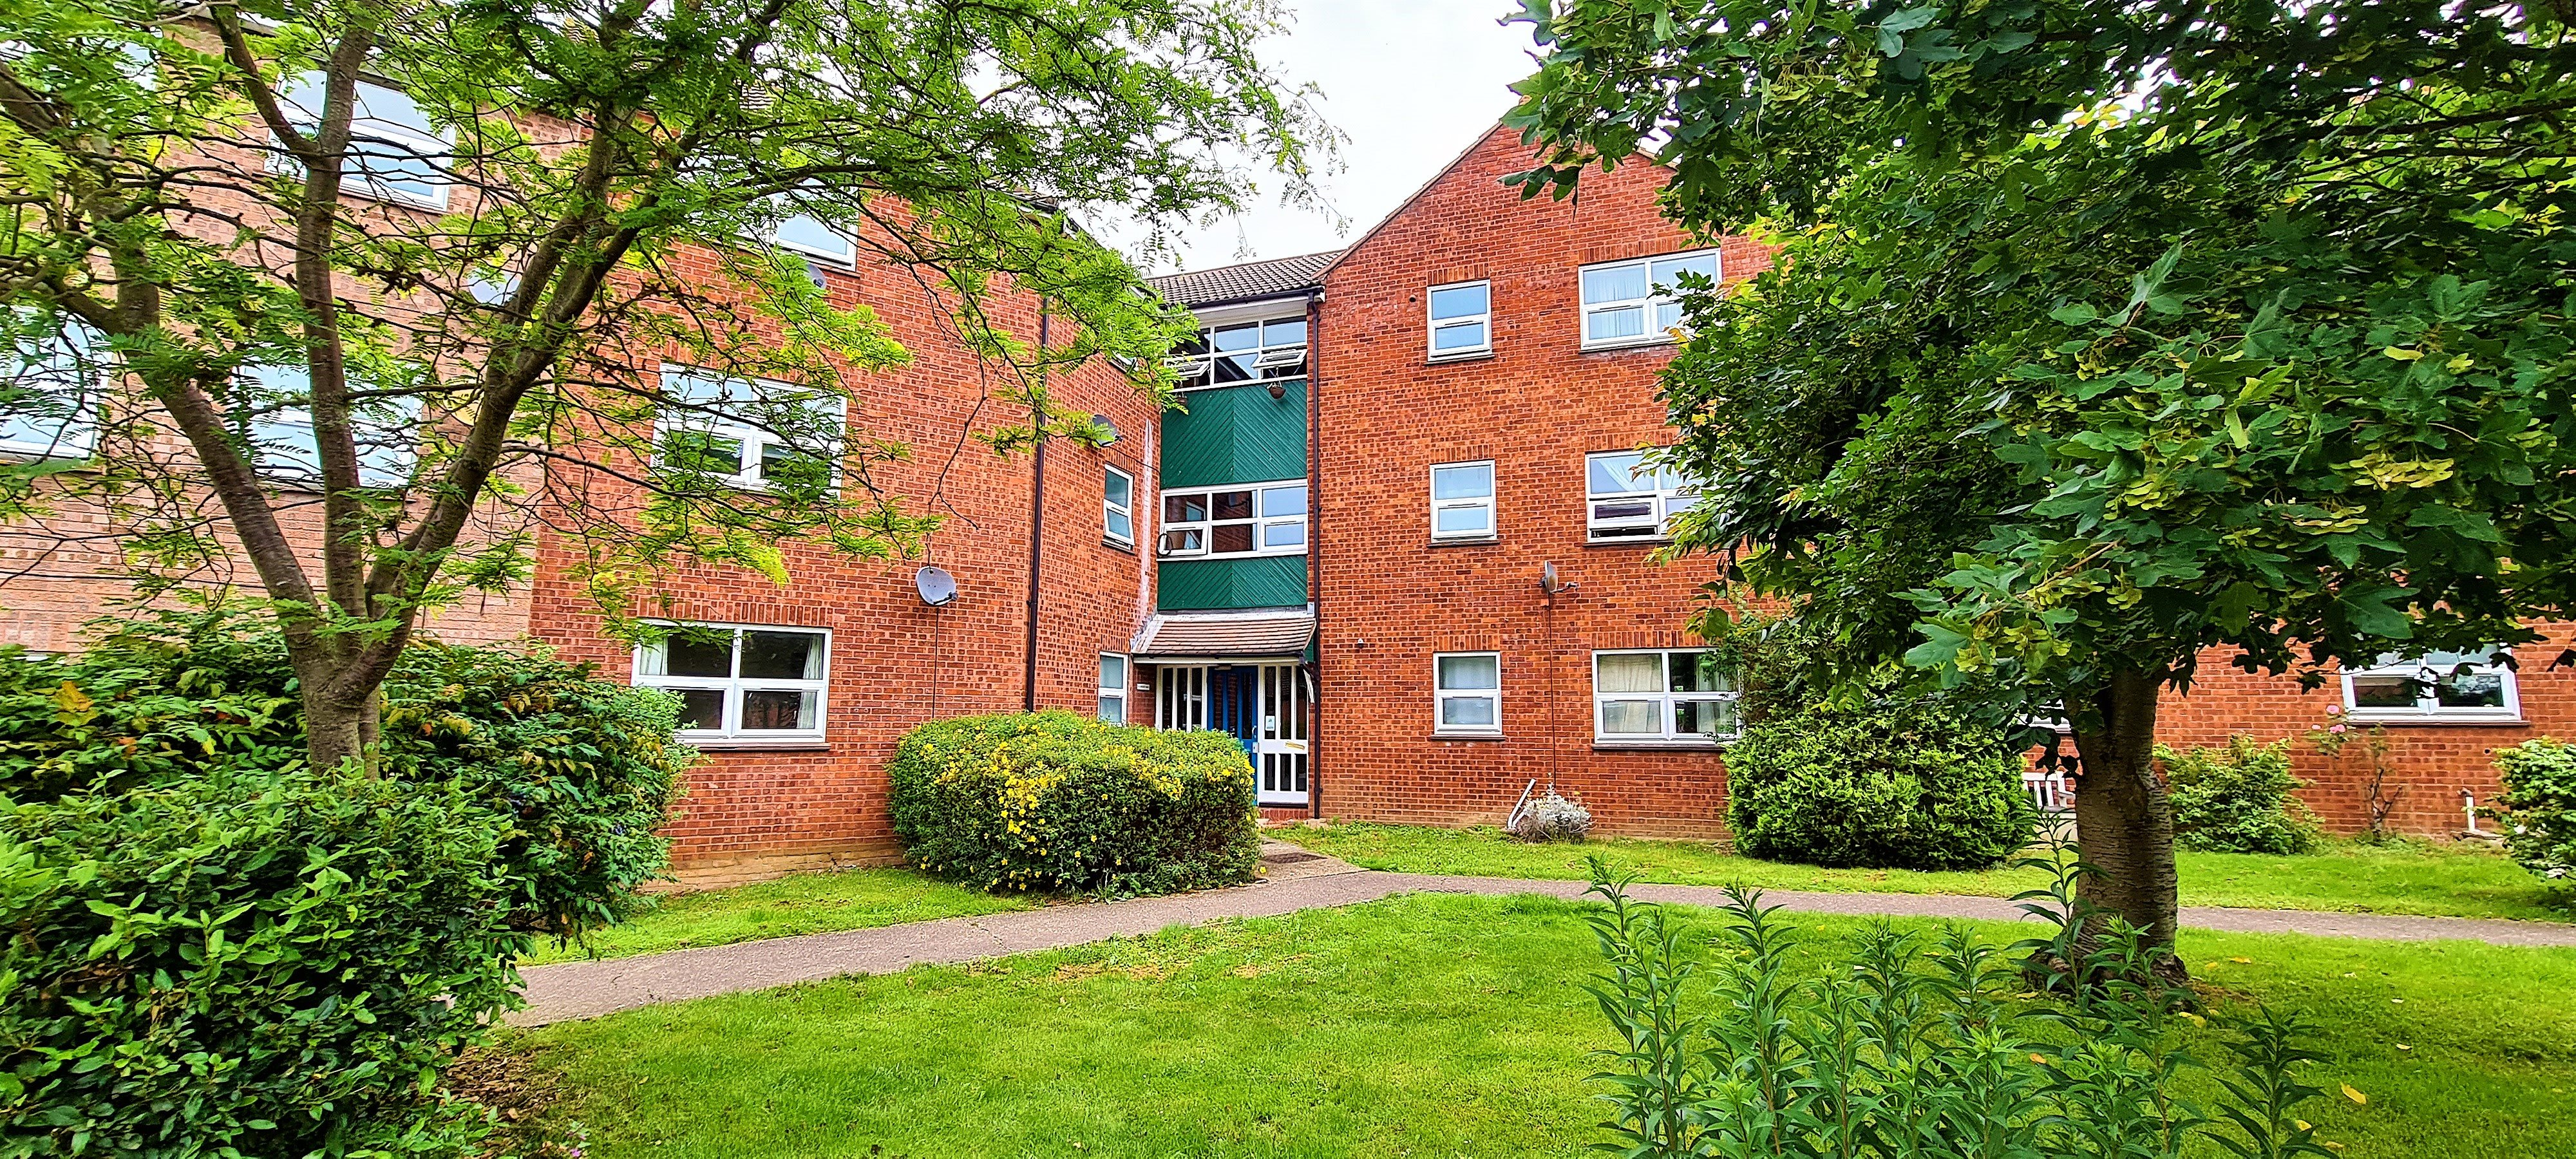 1 bed flat for sale in Nelson Place, South Woodham Ferrers, CM3